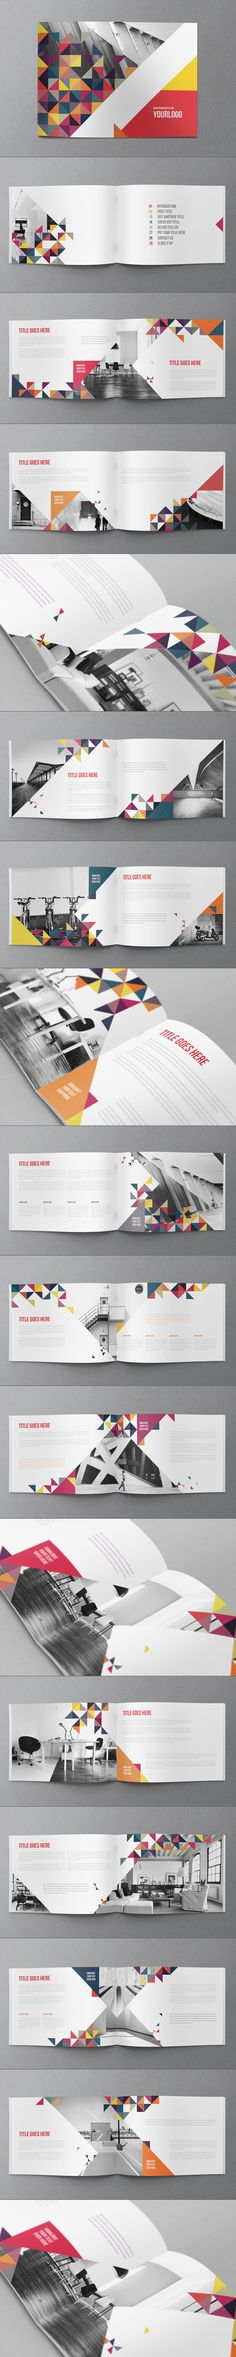 This colorful  brochure stood out to me because of the triangle shapes and bright colors that was used. It gives it a a very geometrical feel, while using the black and white photos to break up the colors.